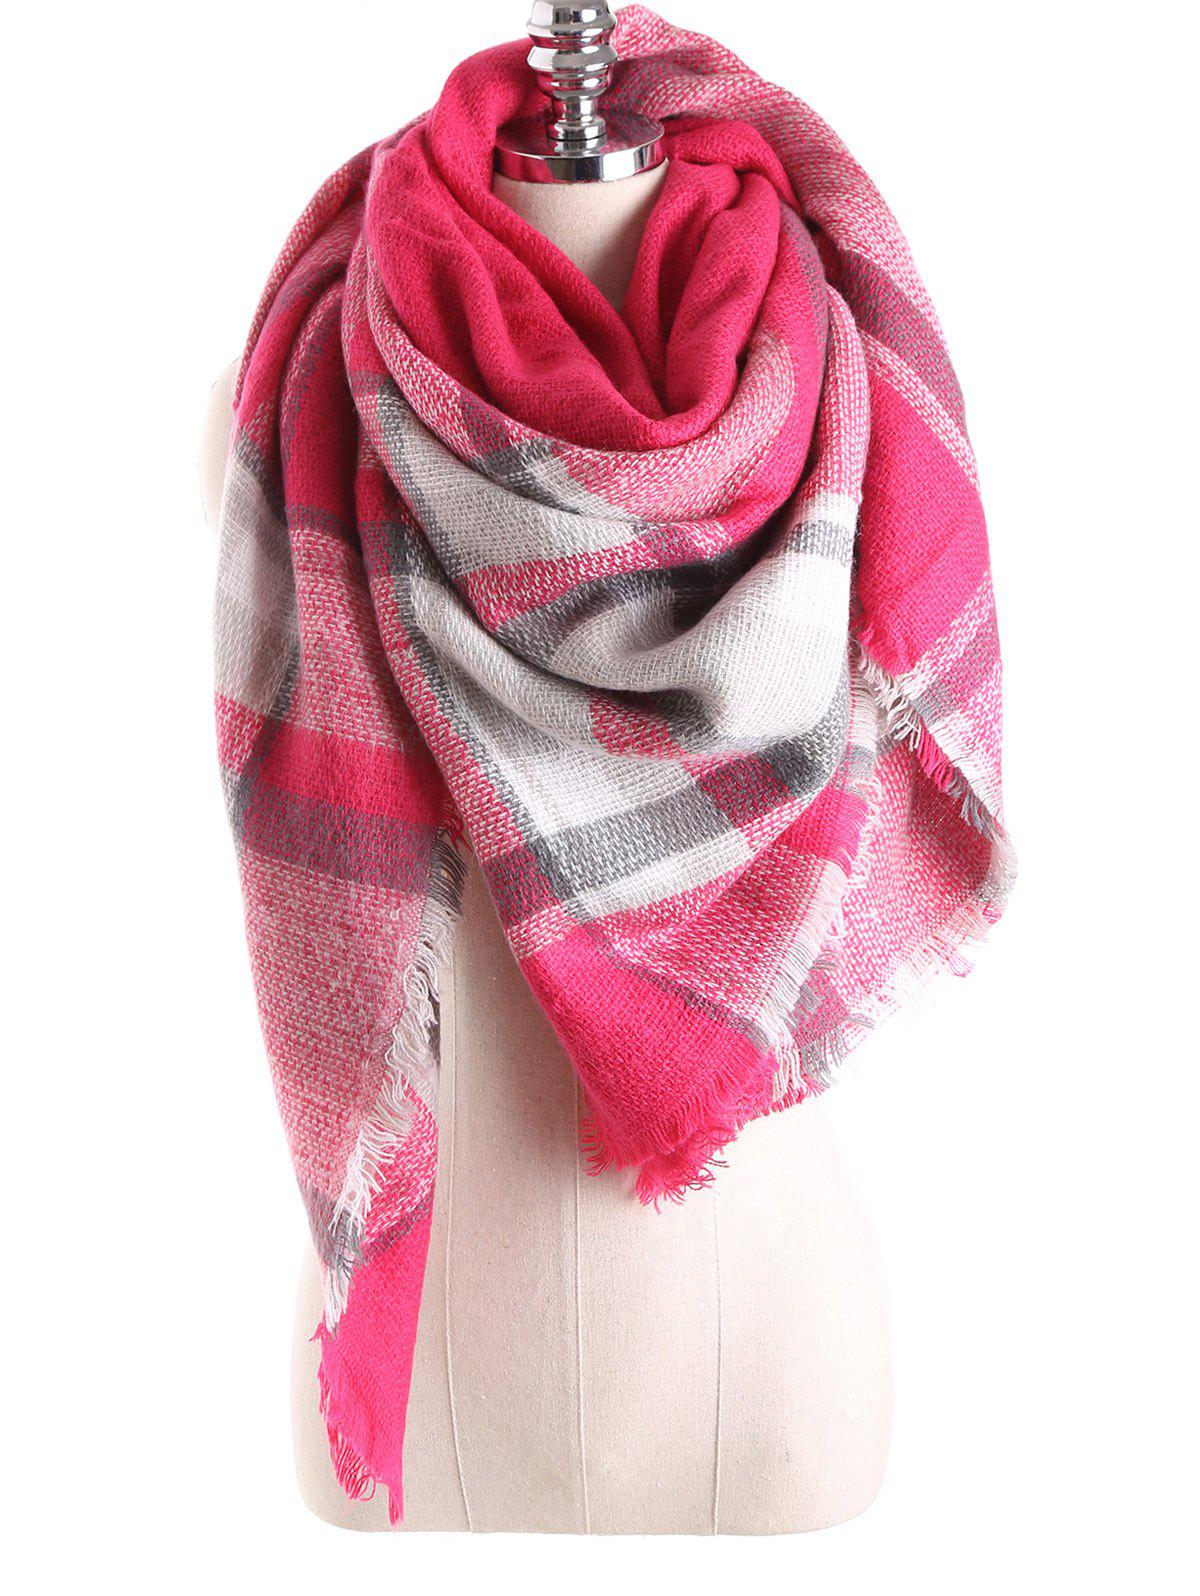 Warm Tartan Plaid Blanket Shawl ScarfACCESSORIES<br><br>Color: BRIGHT PINK; Scarf Type: Scarf; Group: Adult; Gender: For Women; Style: Fashion; Material: Acrylic; Season: Fall,Winter; Scarf Length: 140CM; Scarf Width (CM): 140CM; Weight: 0.270kg; Package Contents: 1 x Scarf;